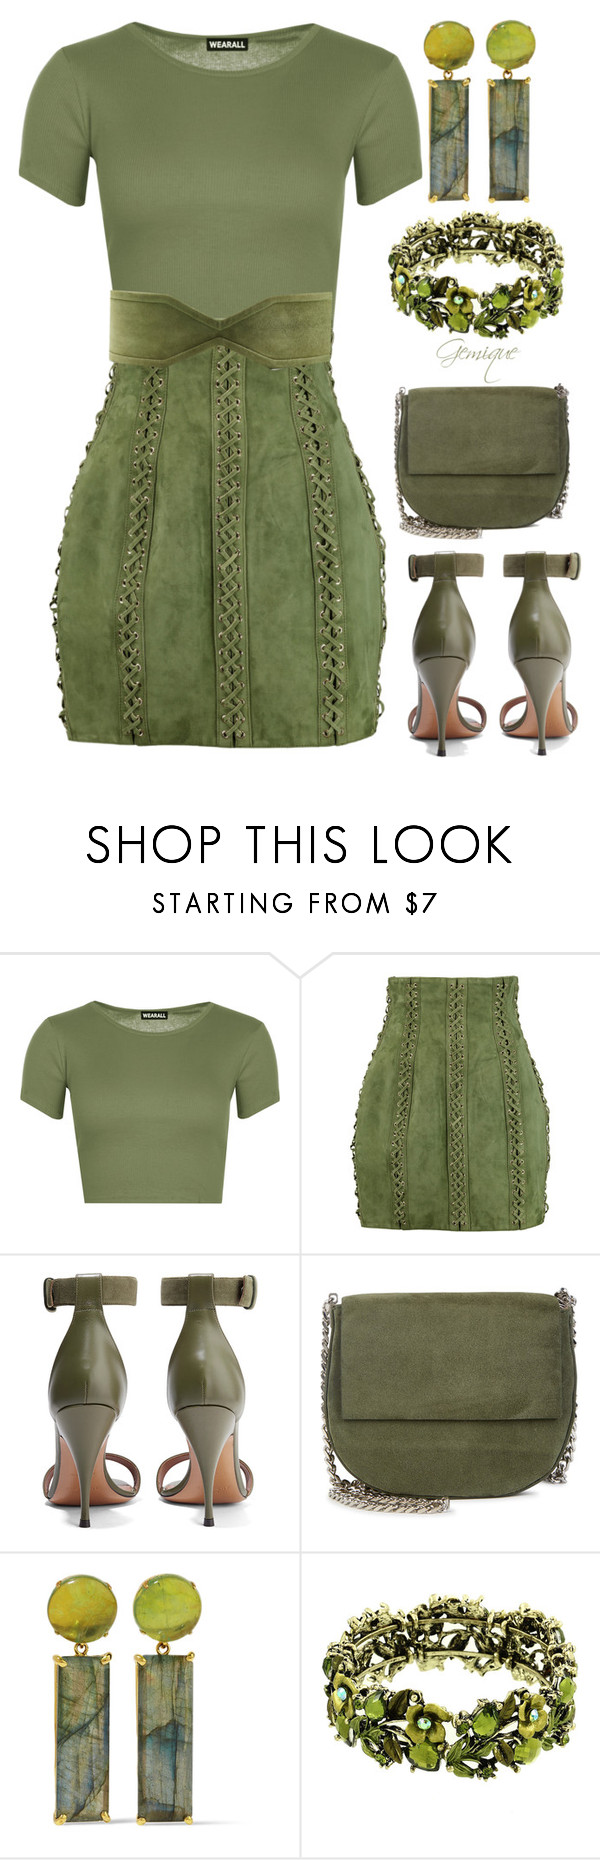 """""""Olive Green"""" by gemique ❤ liked on Polyvore featuring WearAll, Balmain, Givenchy, Gvyn and Bounkit"""